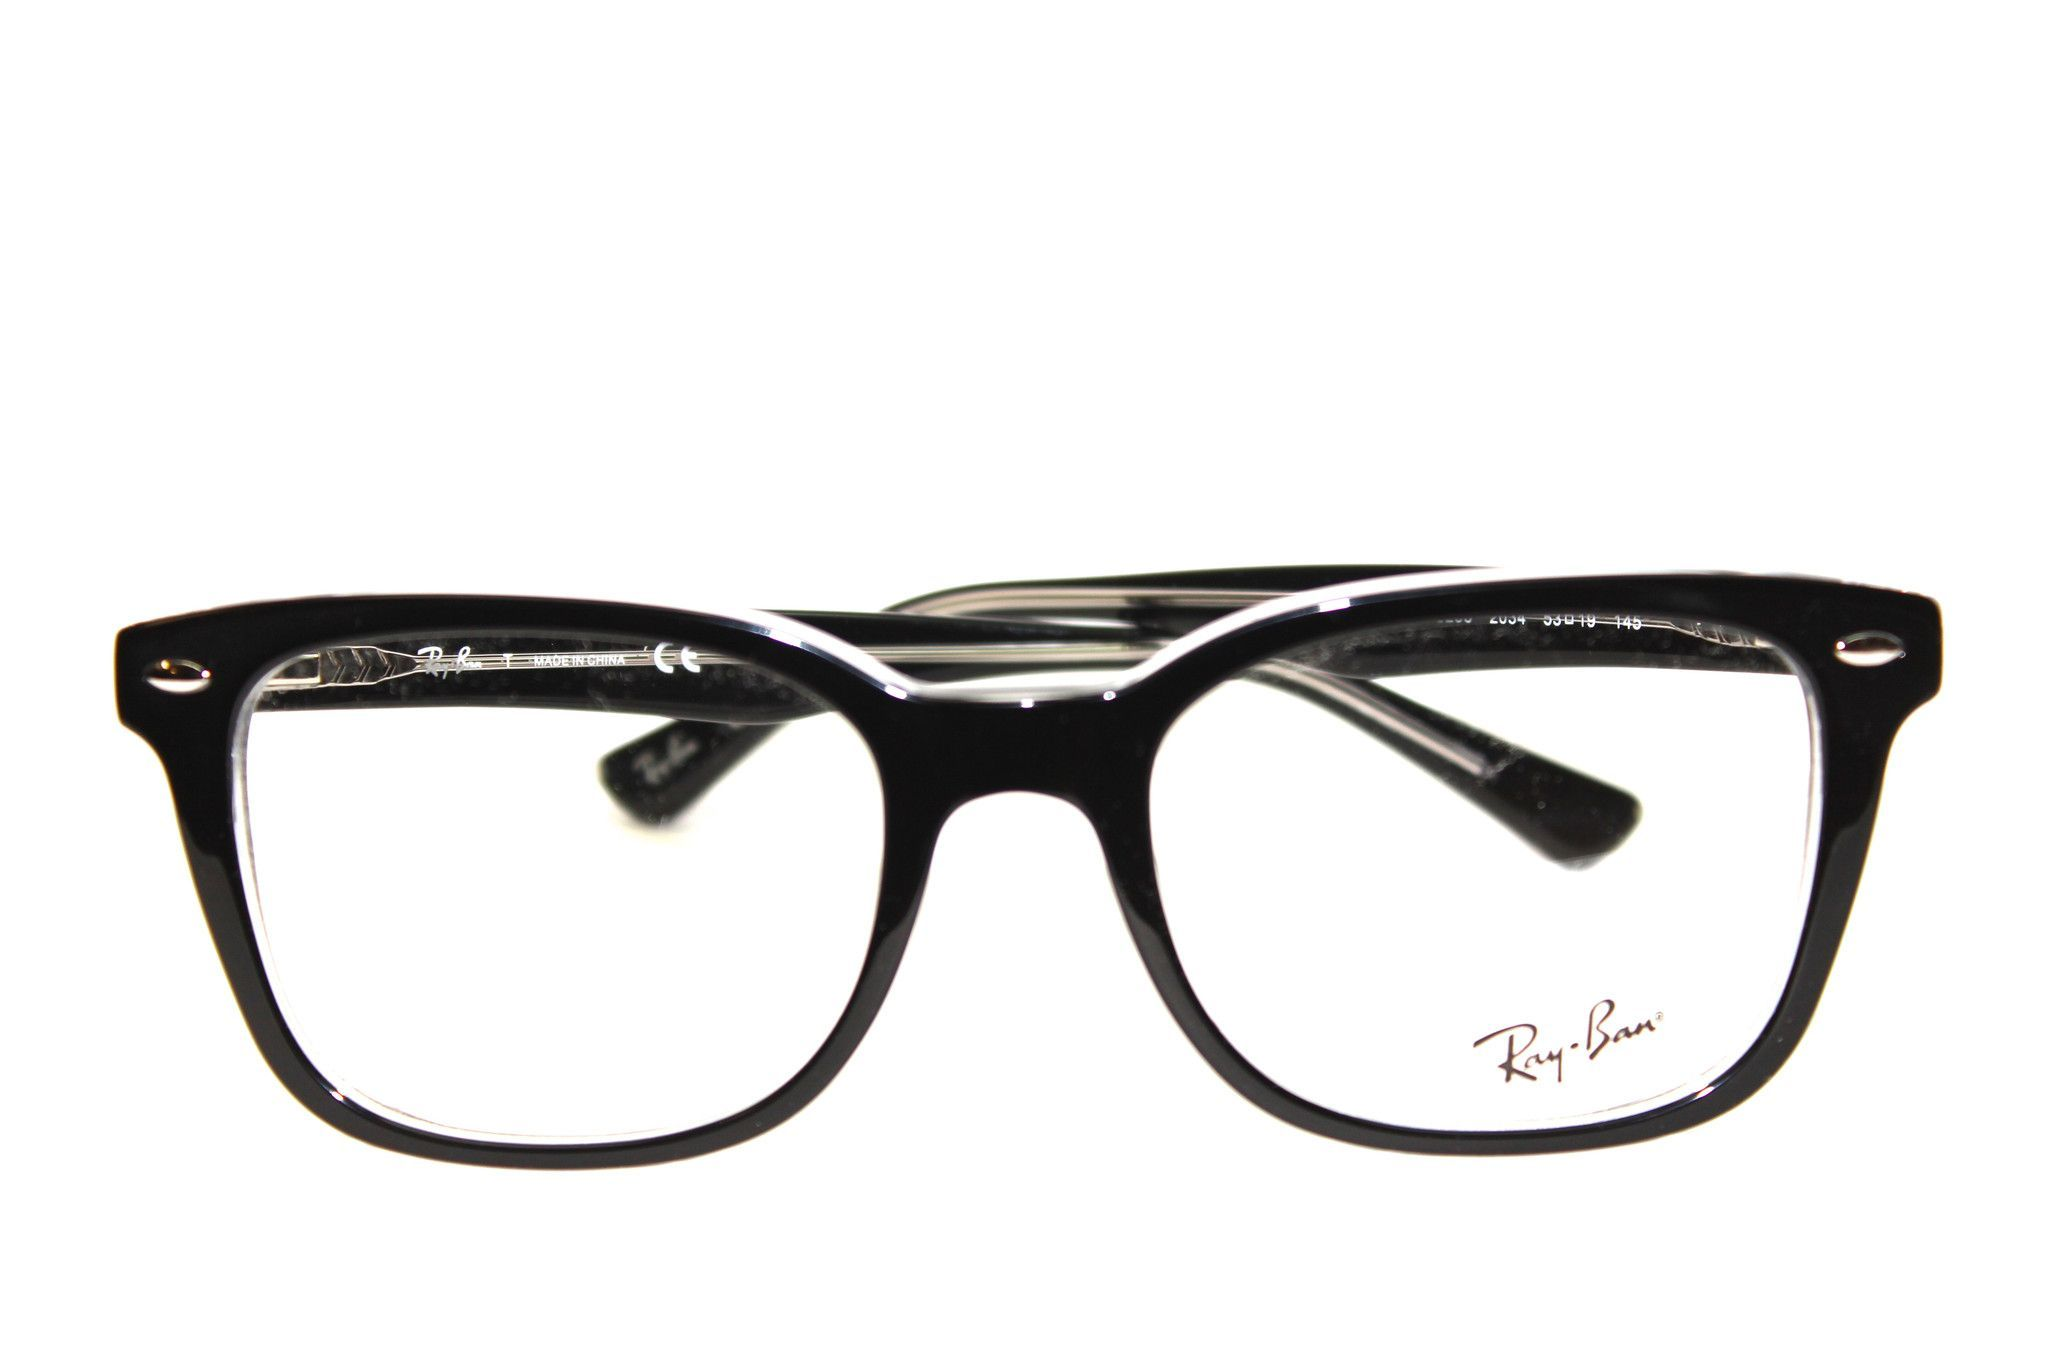 e6d5119824 Ray-Ban RX5285 eyeglasses frames are a less heavy